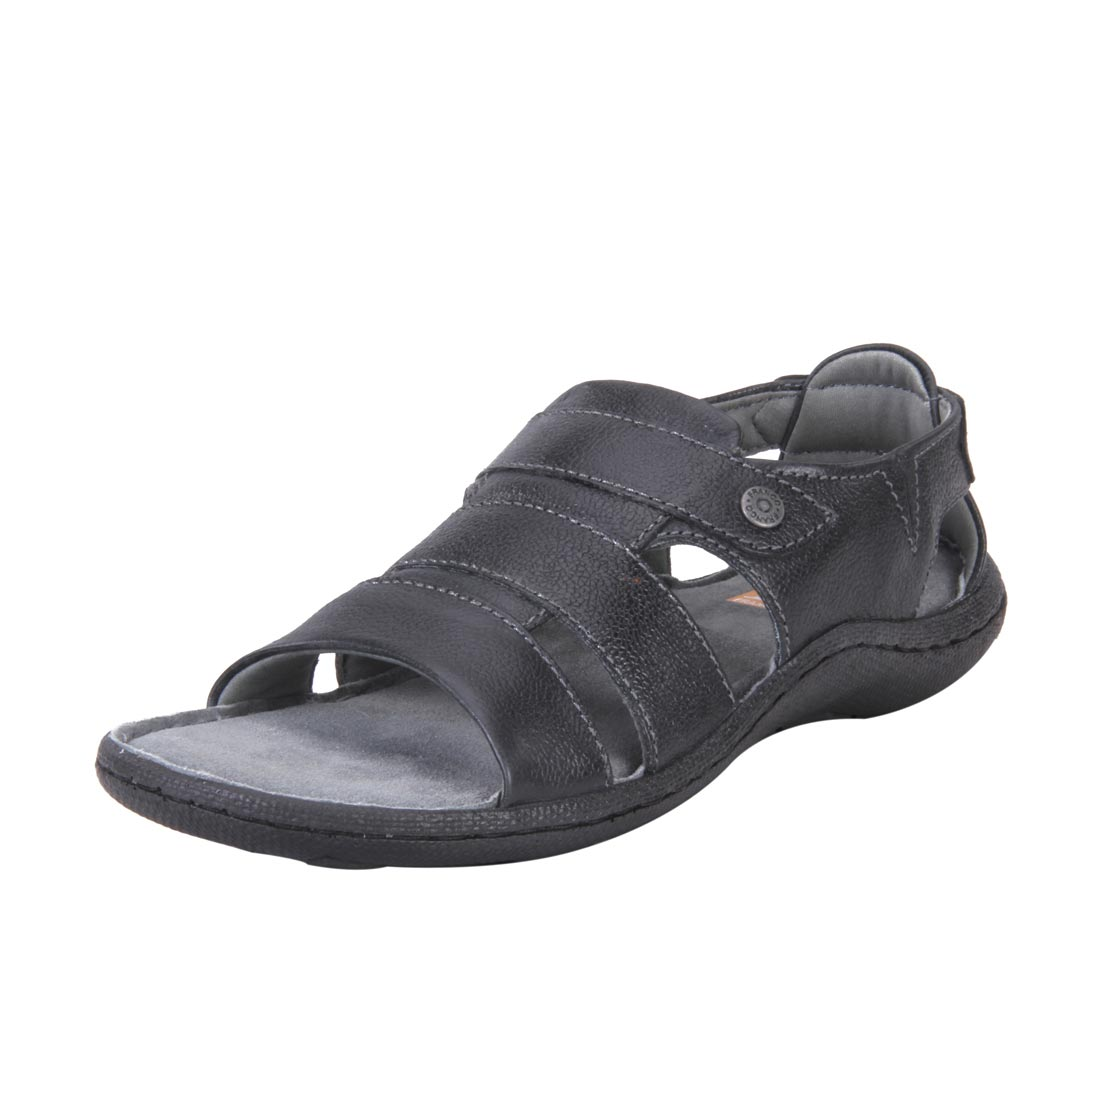 Franco Leone 9510 Black Men's Sandals